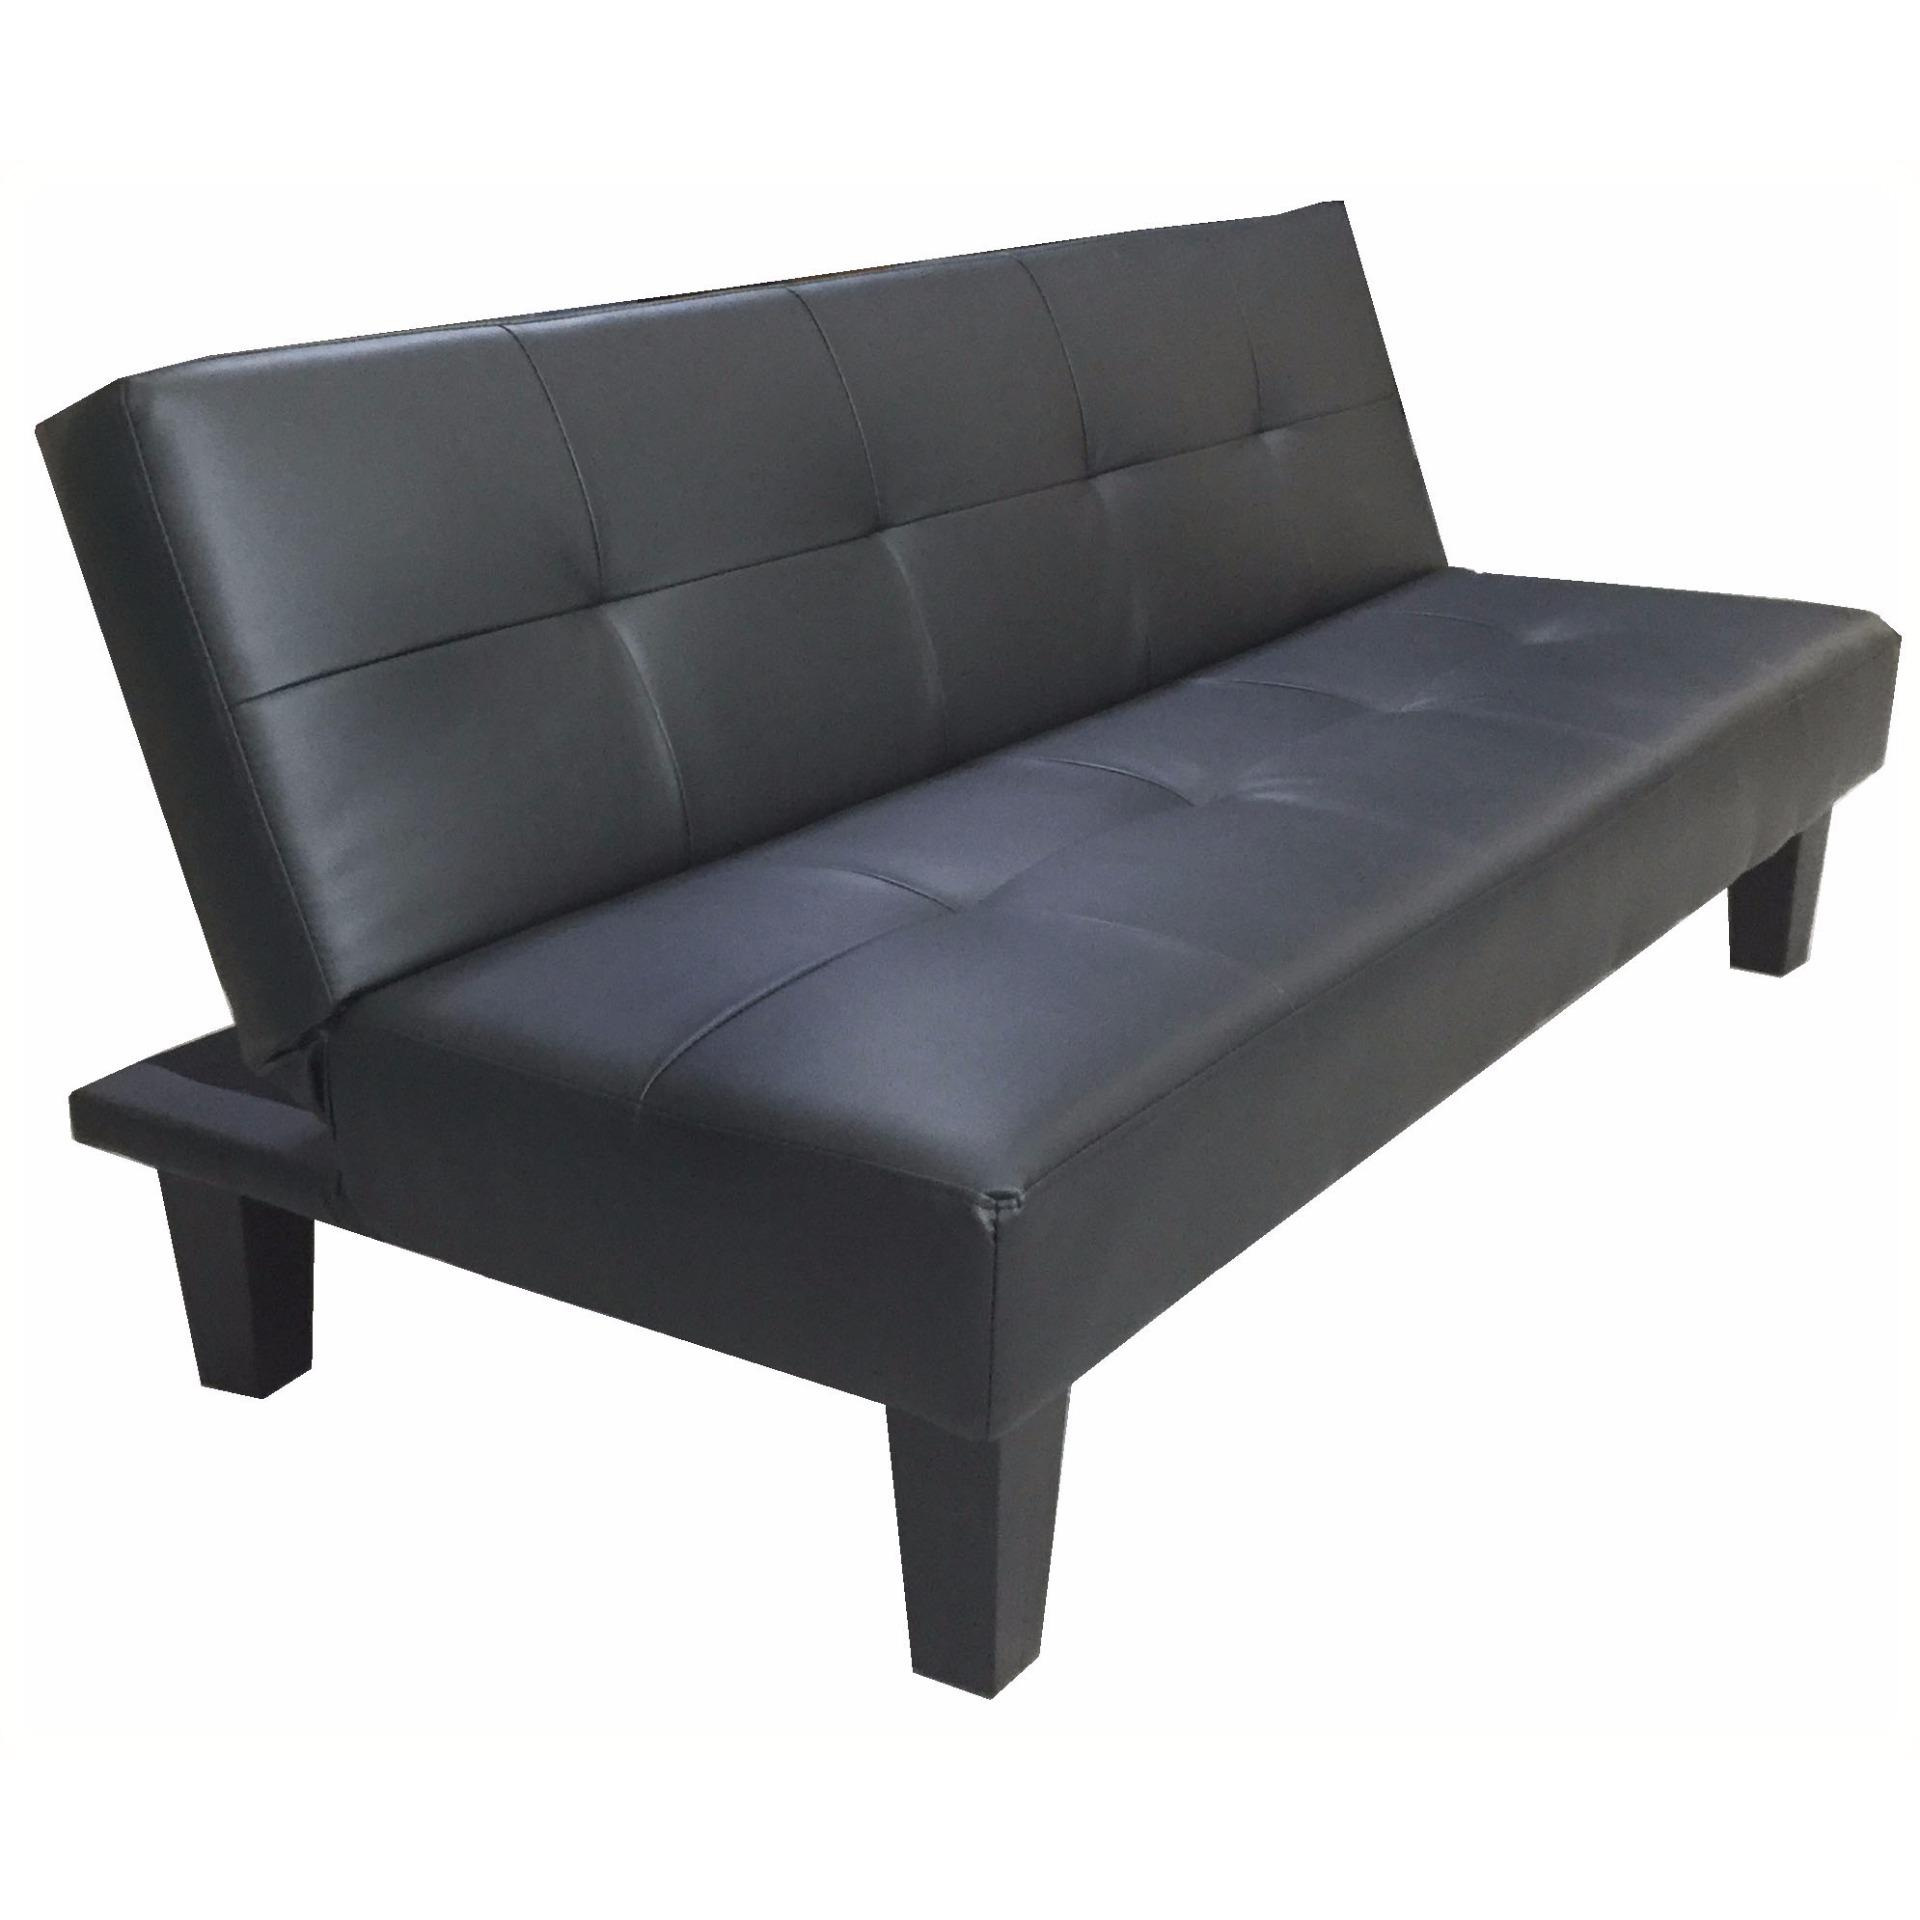 Set sofa lazada for Sofa bed lazada